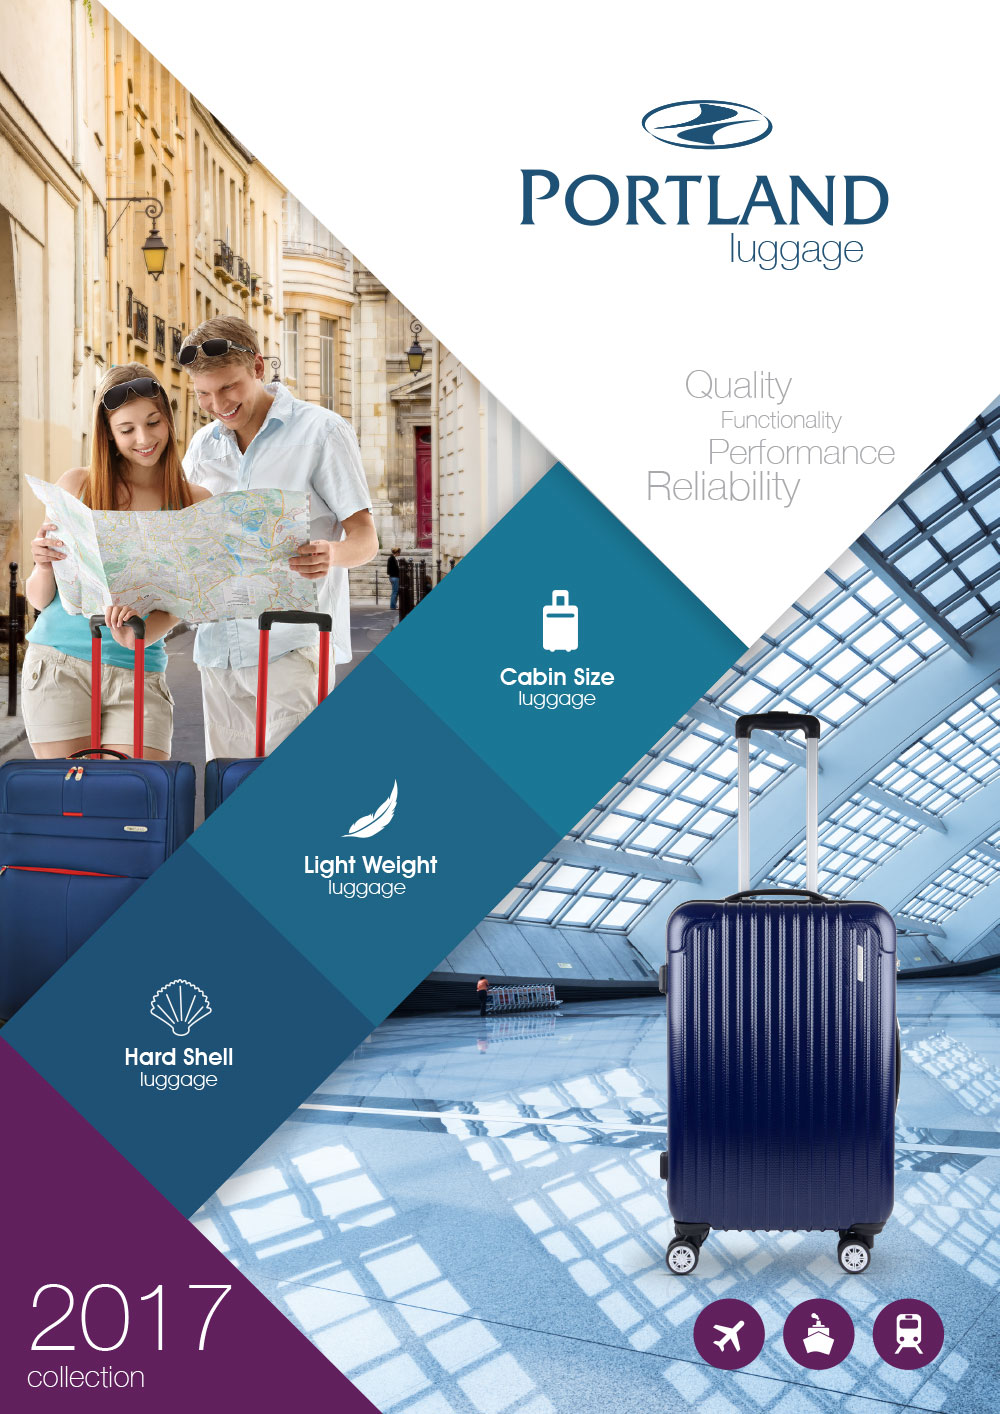 PORTLAND LUGGAGE BROCHURE 2017 1